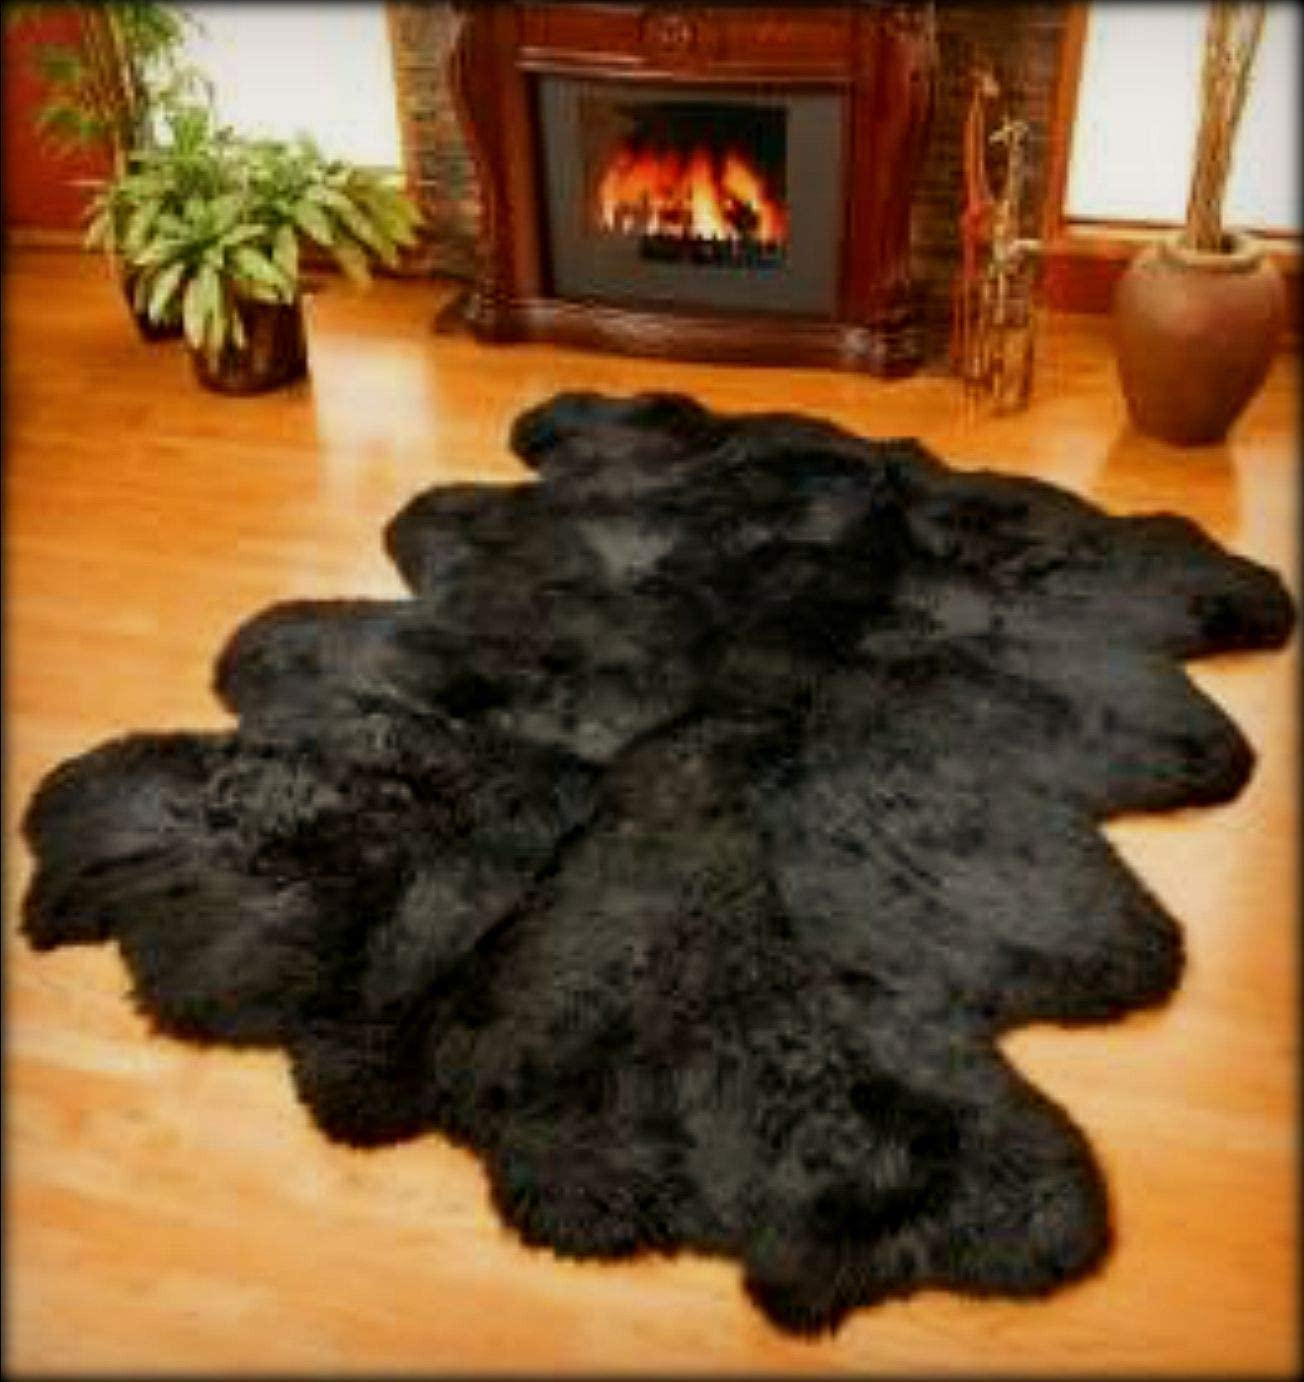 FUR ACCENTS Thick Shag Faux Fur Sheepskin Black Bear Area Rug Random Pelt Design Black 5 x6